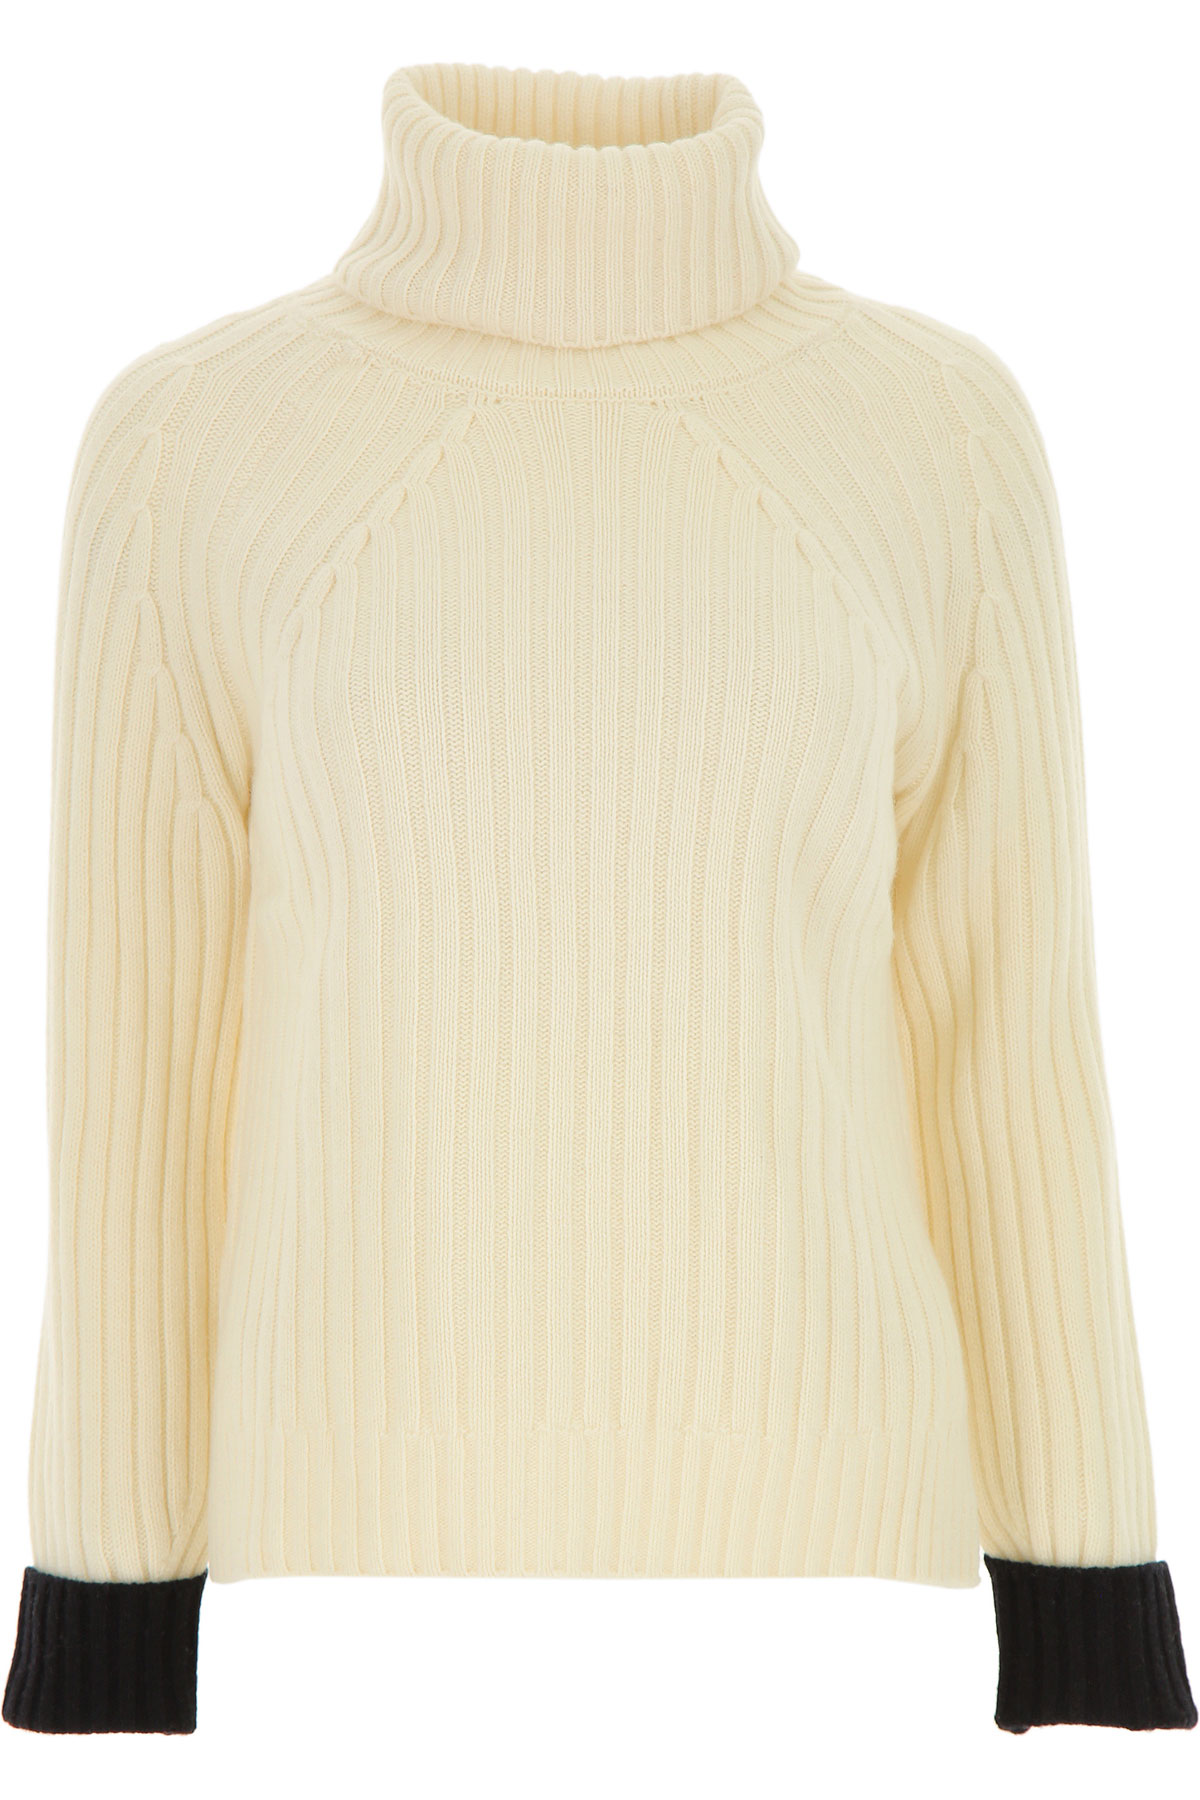 Ermanno Scervino Sweater for Women Jumper On Sale, White, Wool, 2019, 4 6